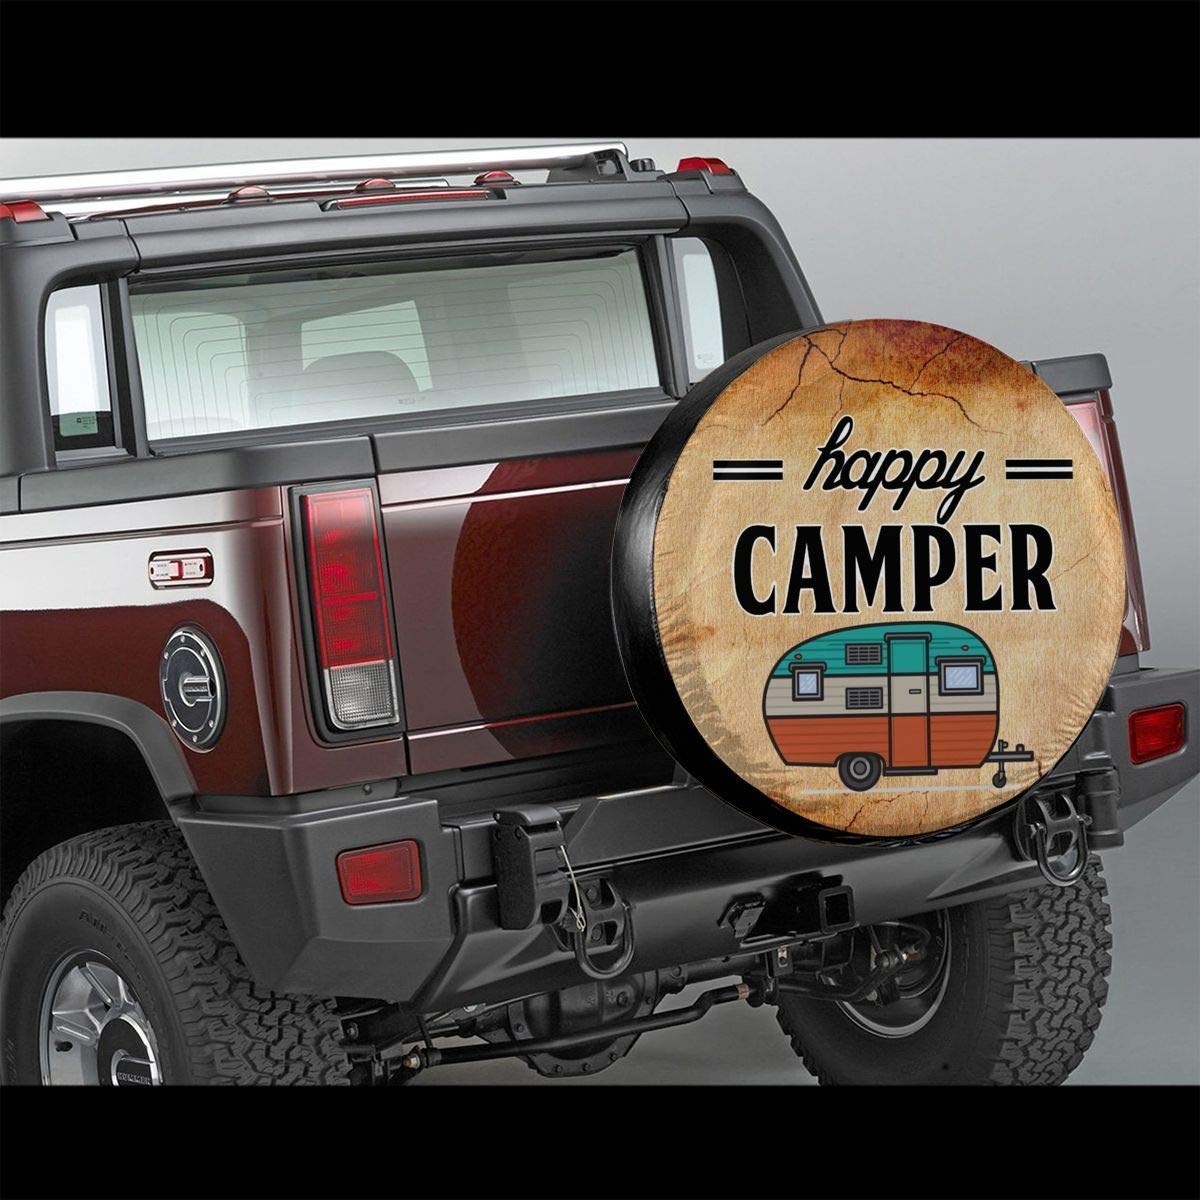 Happy Camper Camping Spare Tire Cover Dust-Proof Waterproof Wheel Covers Sunscreen Corrosion Protection for Trailer RV SUV Truck Camper Travel 14 15 16 17